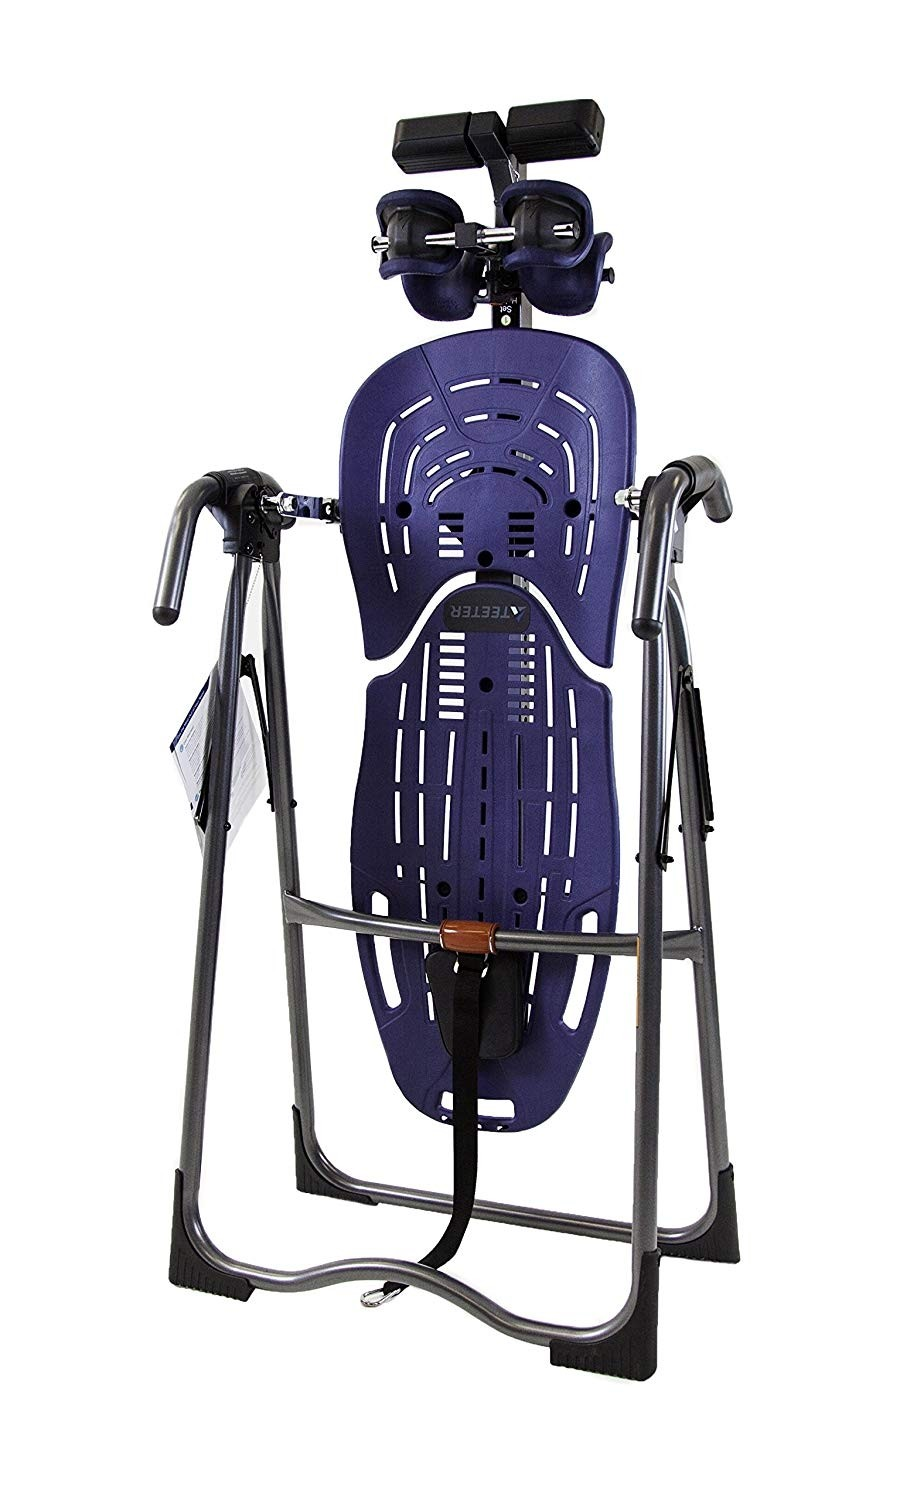 Teeter 560 Inversion Table